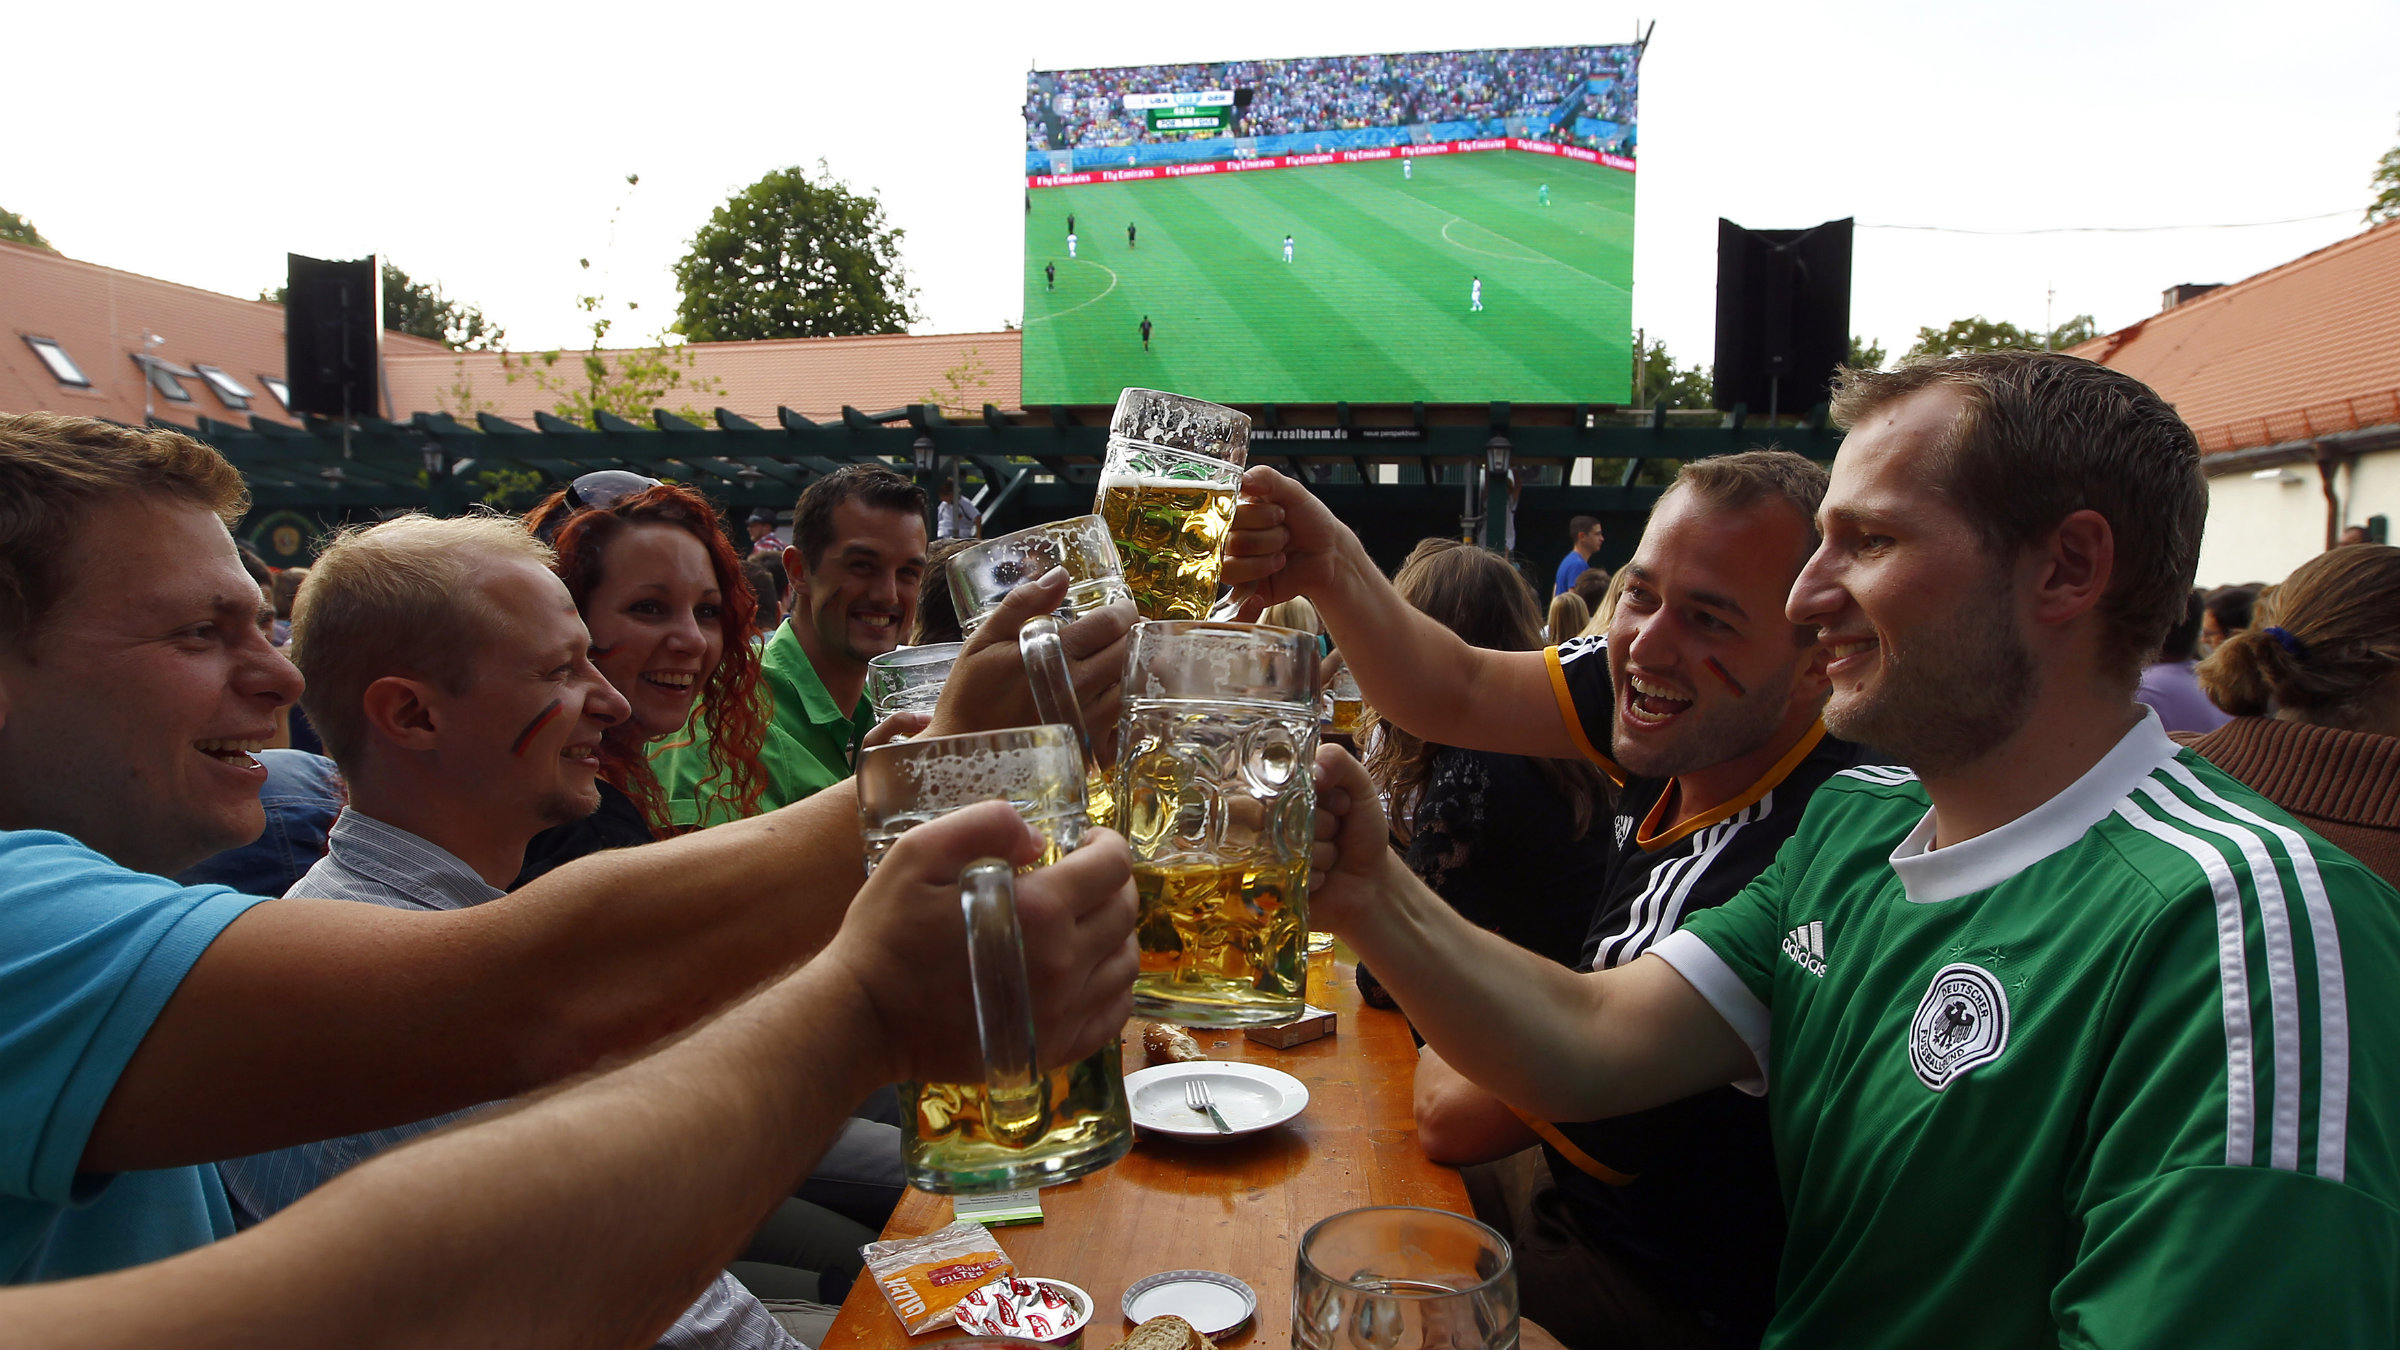 German soccer fans toast with beer as their team plays against the U.S. during their 2014 World Cup Group G soccer match, at public viewing in a beergarden 'Hirschgarten' in Munich June 26, 2014.